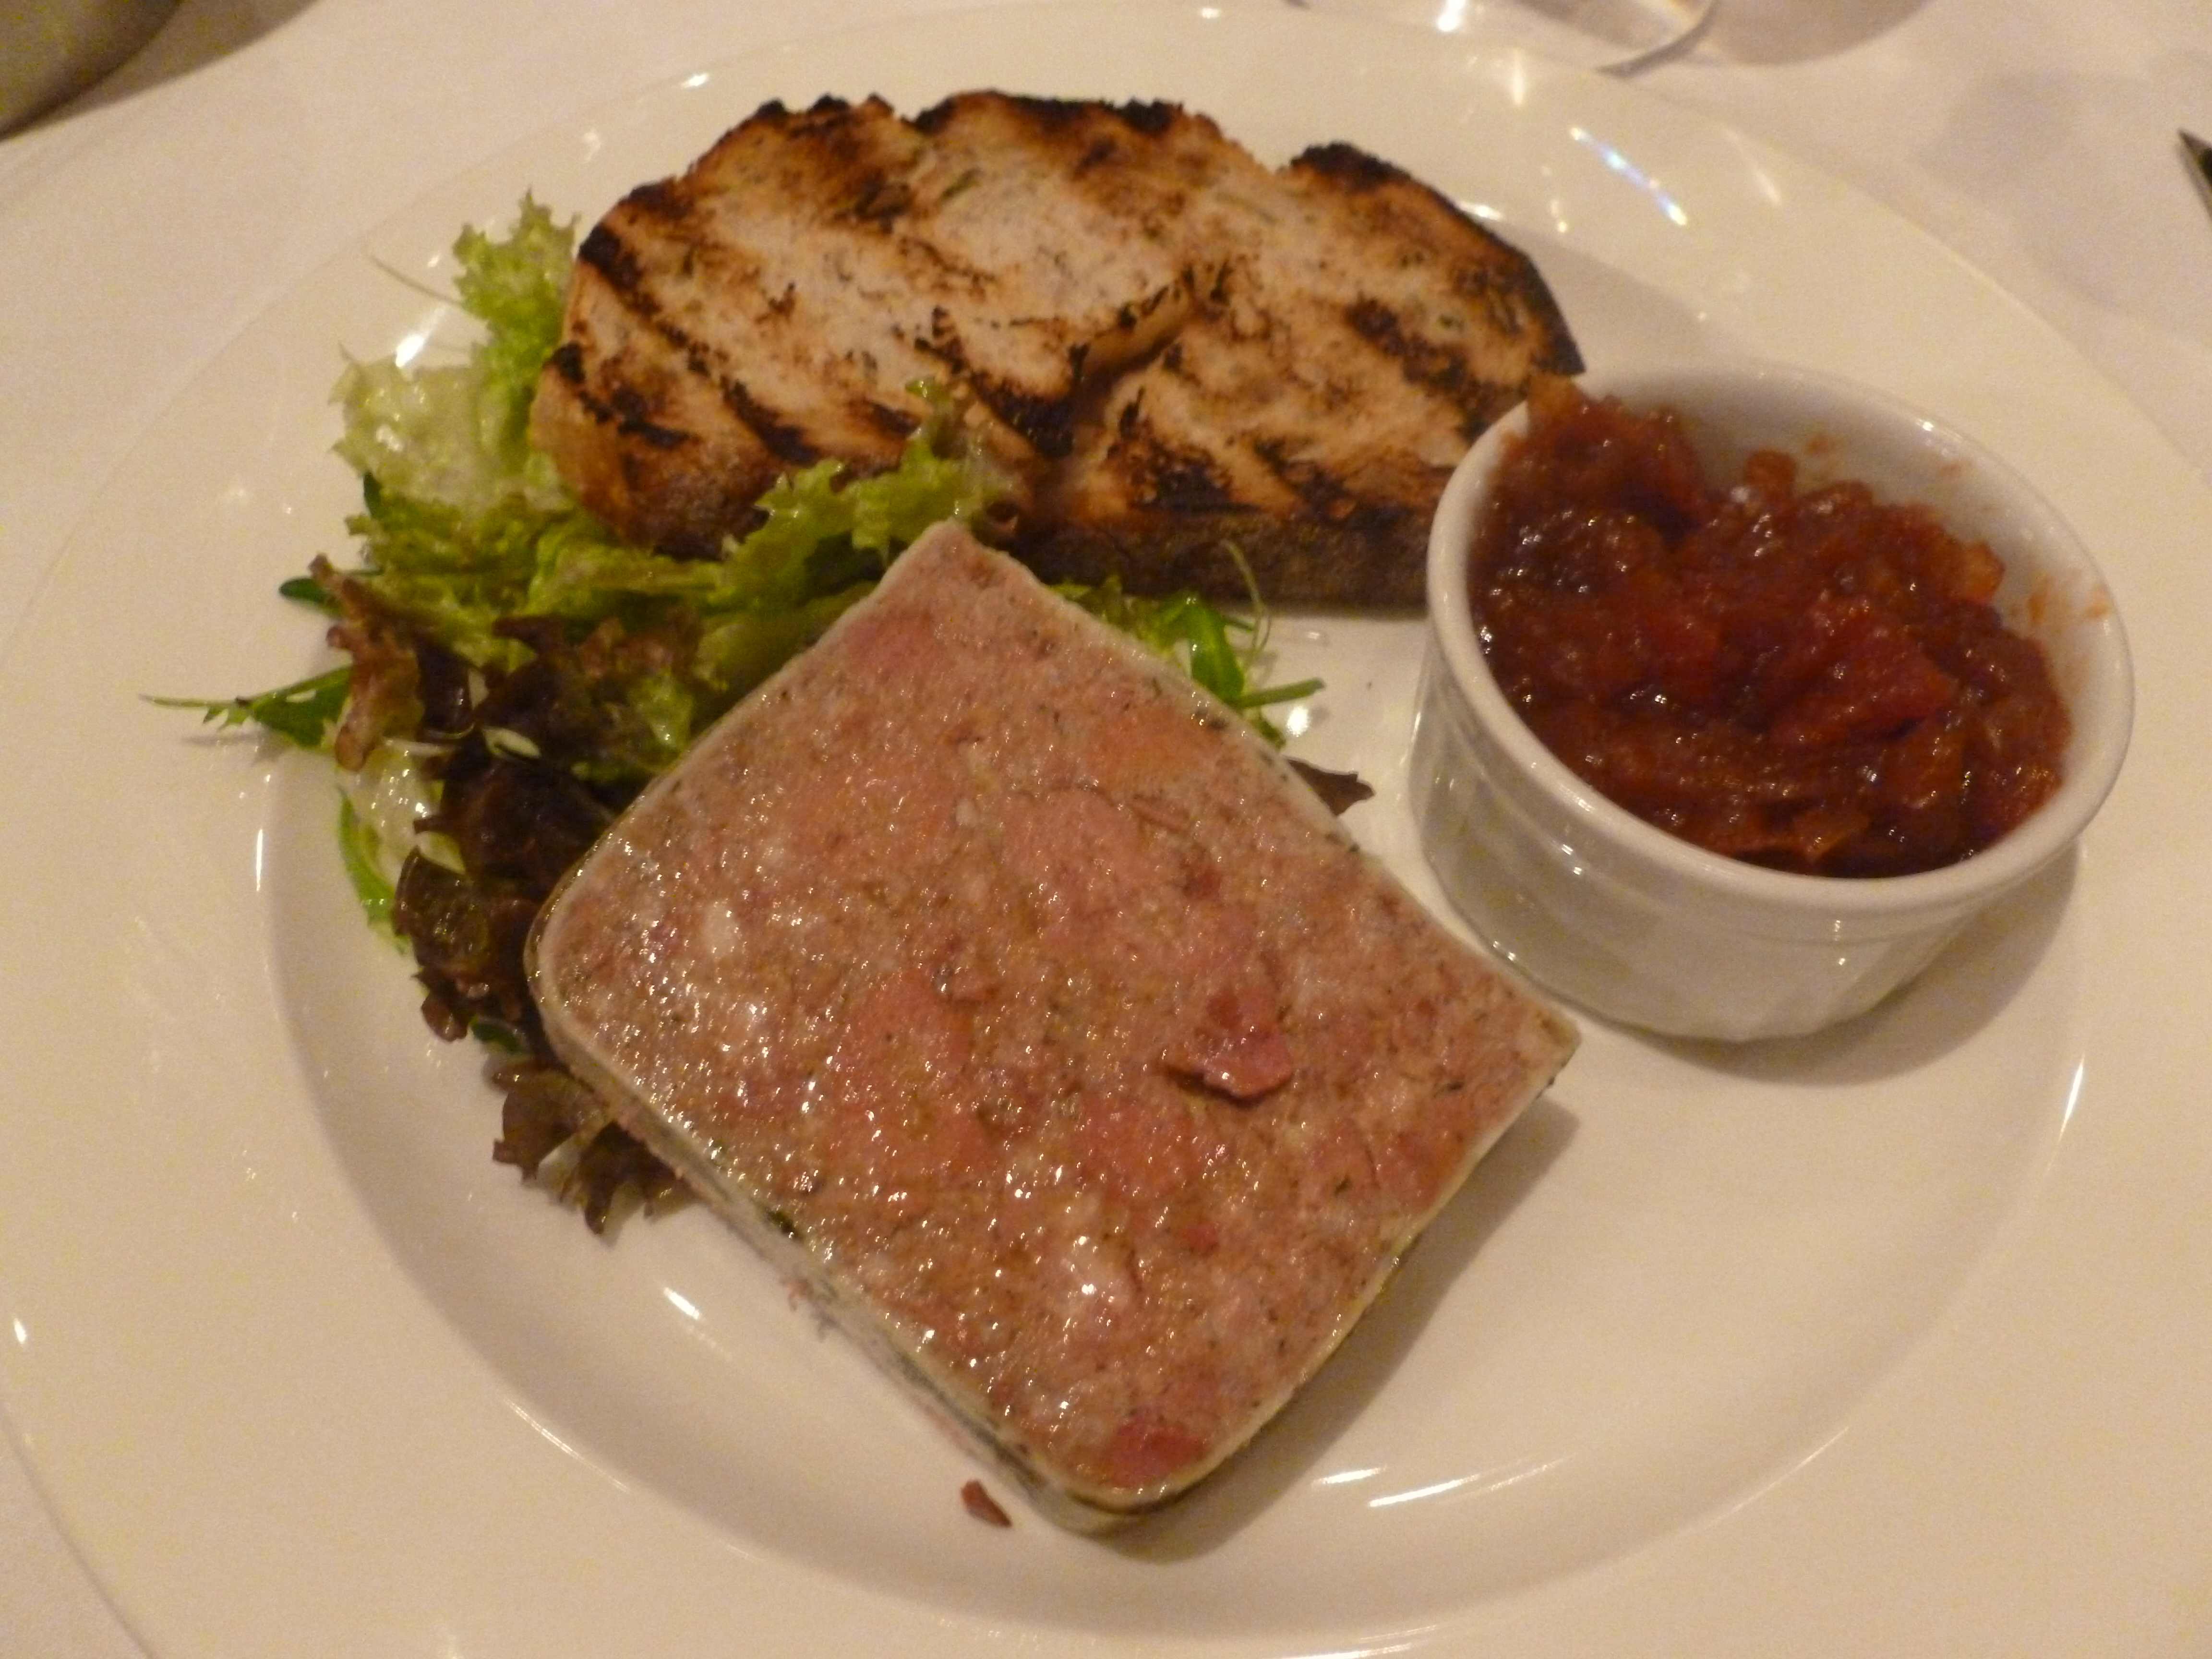 Divine starter of Chicken Liver Pate